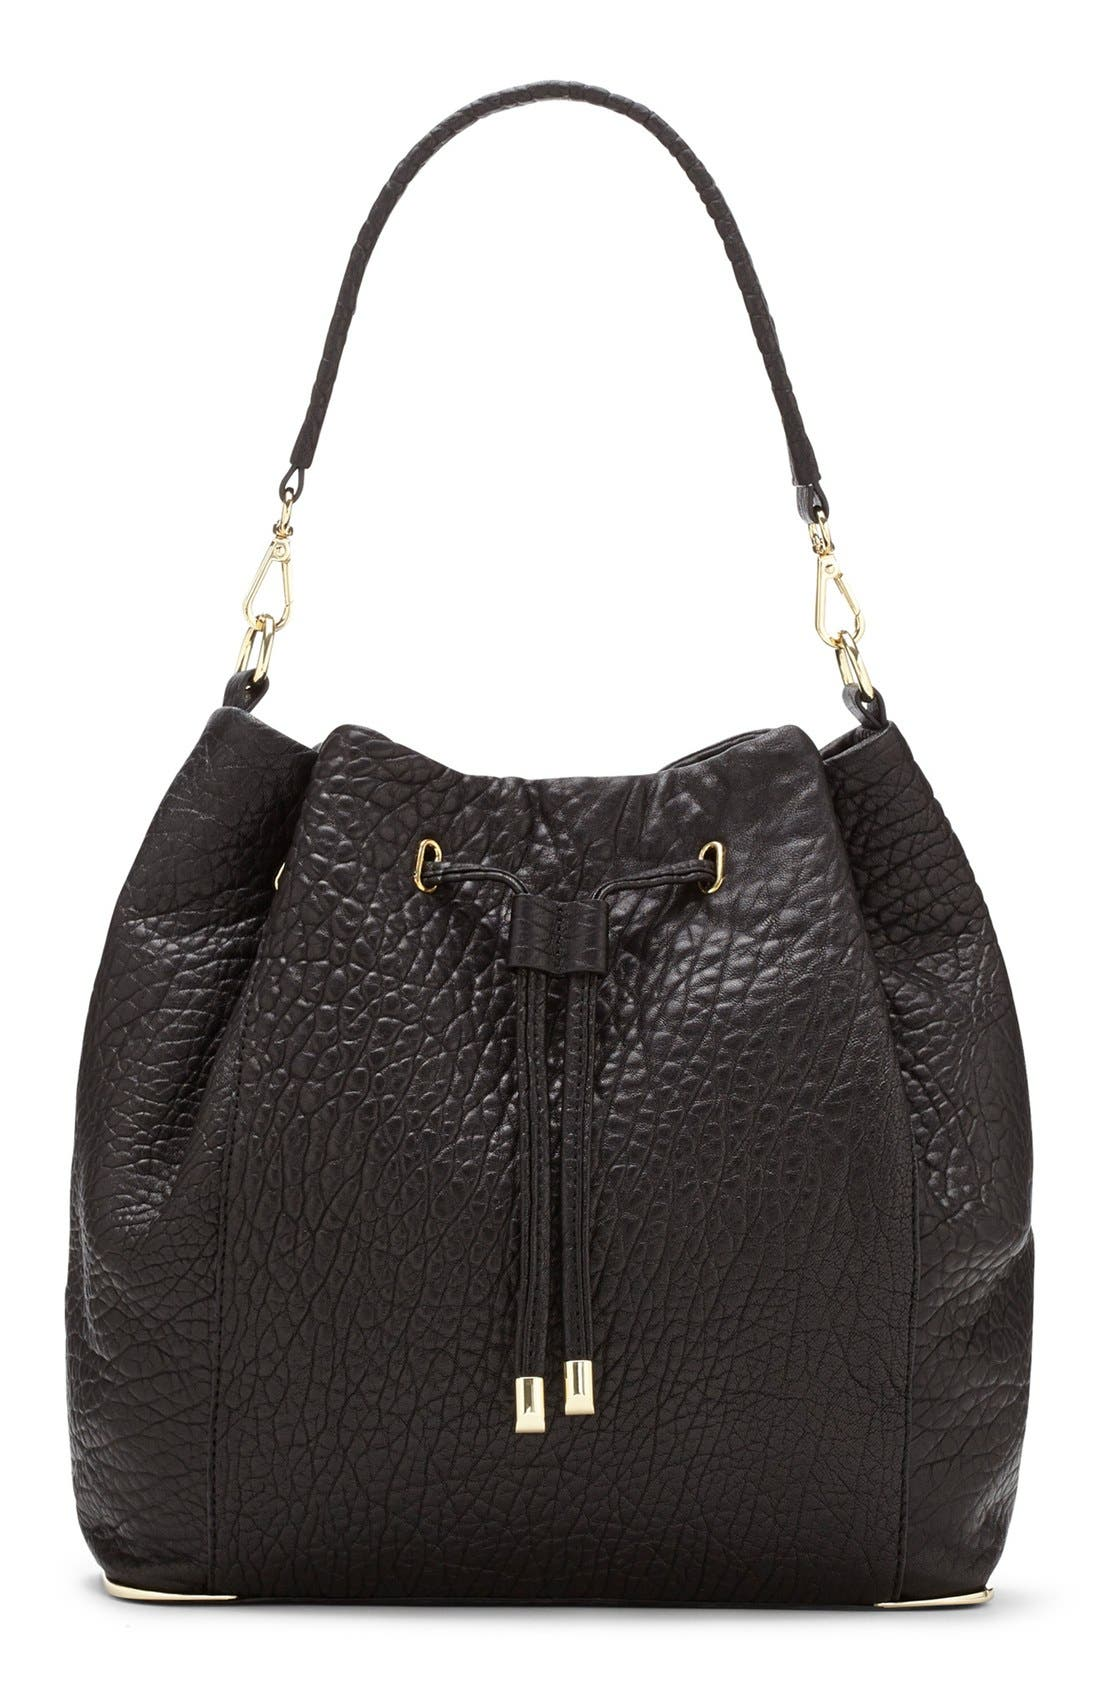 Alternate Image 1 Selected - Vince Camuto 'Knox' Drawstring Leather Bucket Bag